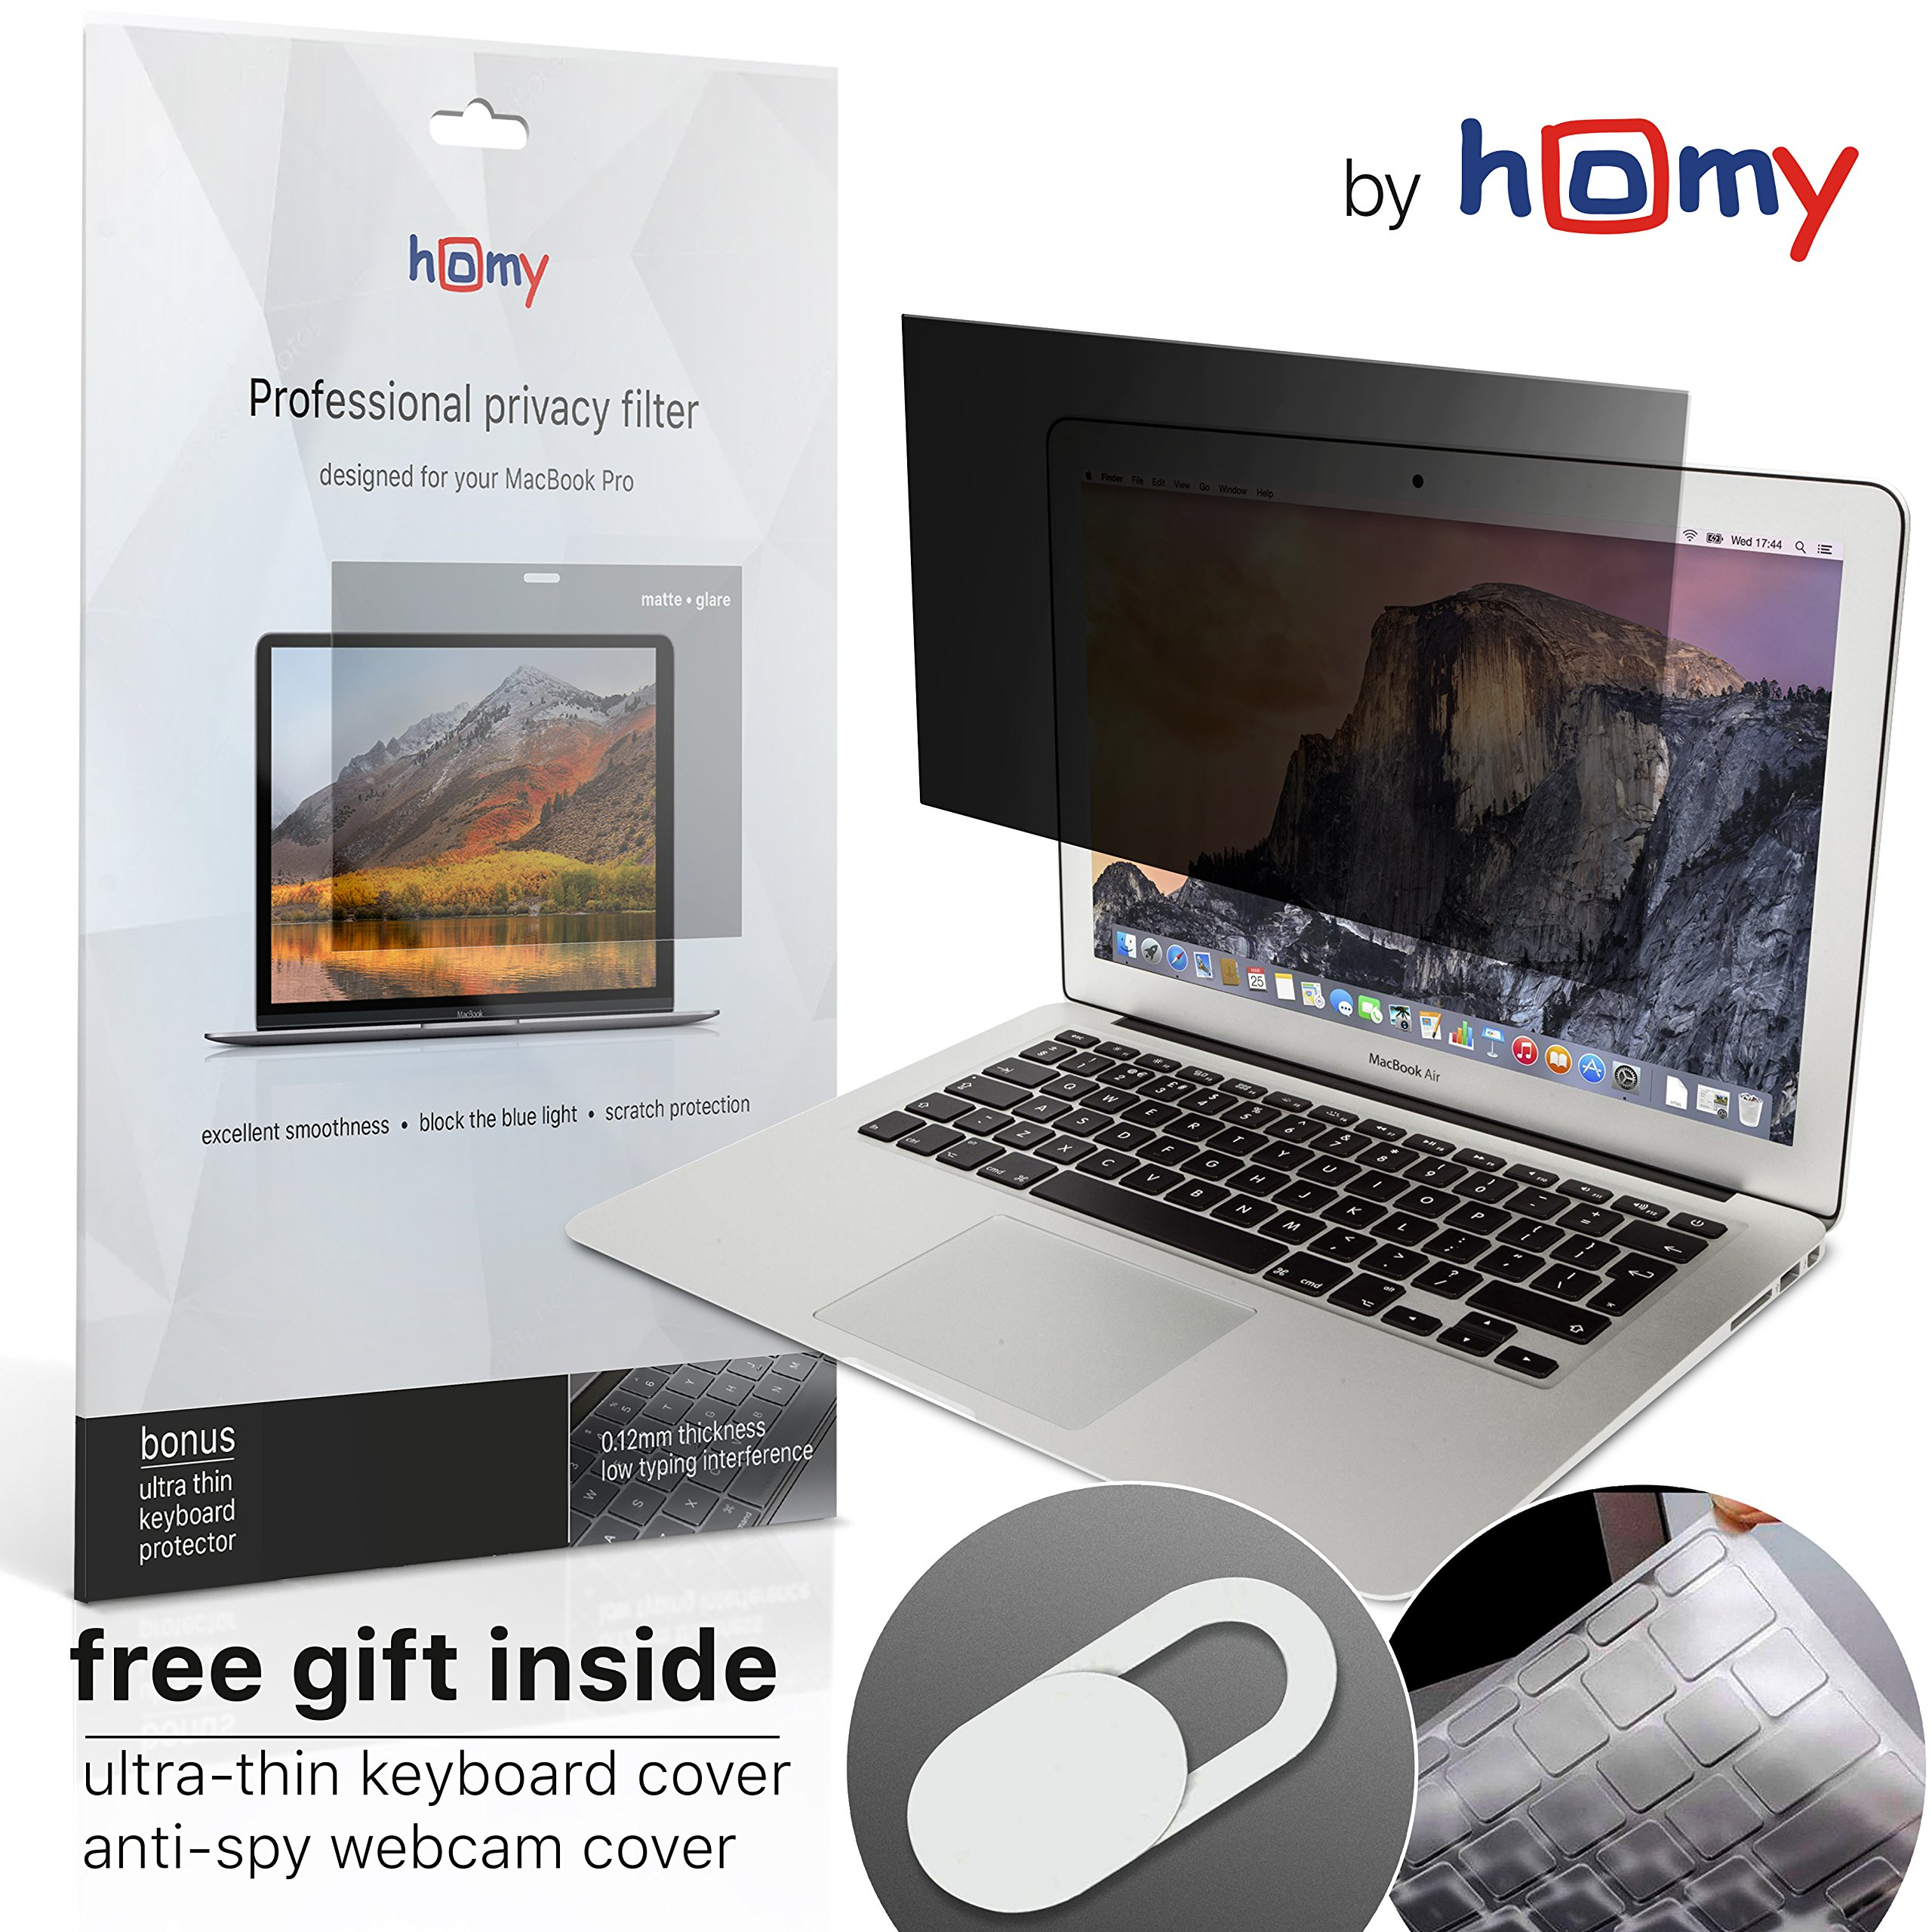 Homy Compatible Privacy Screen Protector for MacBook Air 13 inch + Keyboard Cover Ultra-Thin TPU + Anti-Spy Webcam Sliding Cover + Filter Storage Folder kit. by Homy international (Image #1)